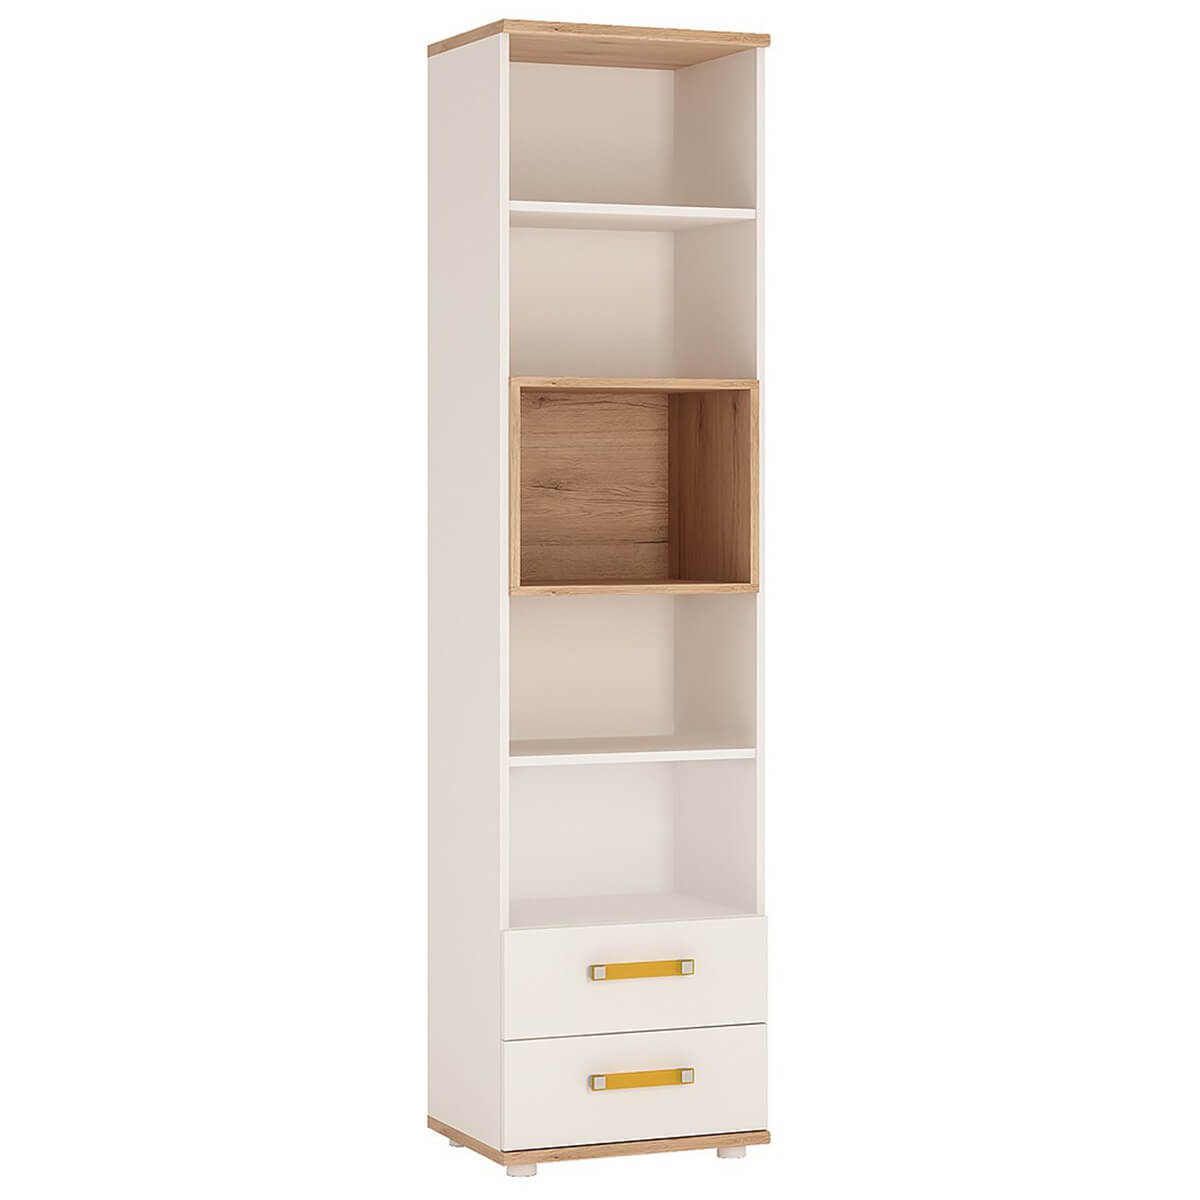 iKids Tall Bookcase with Drawers and Orange Handles | Kids | FADS